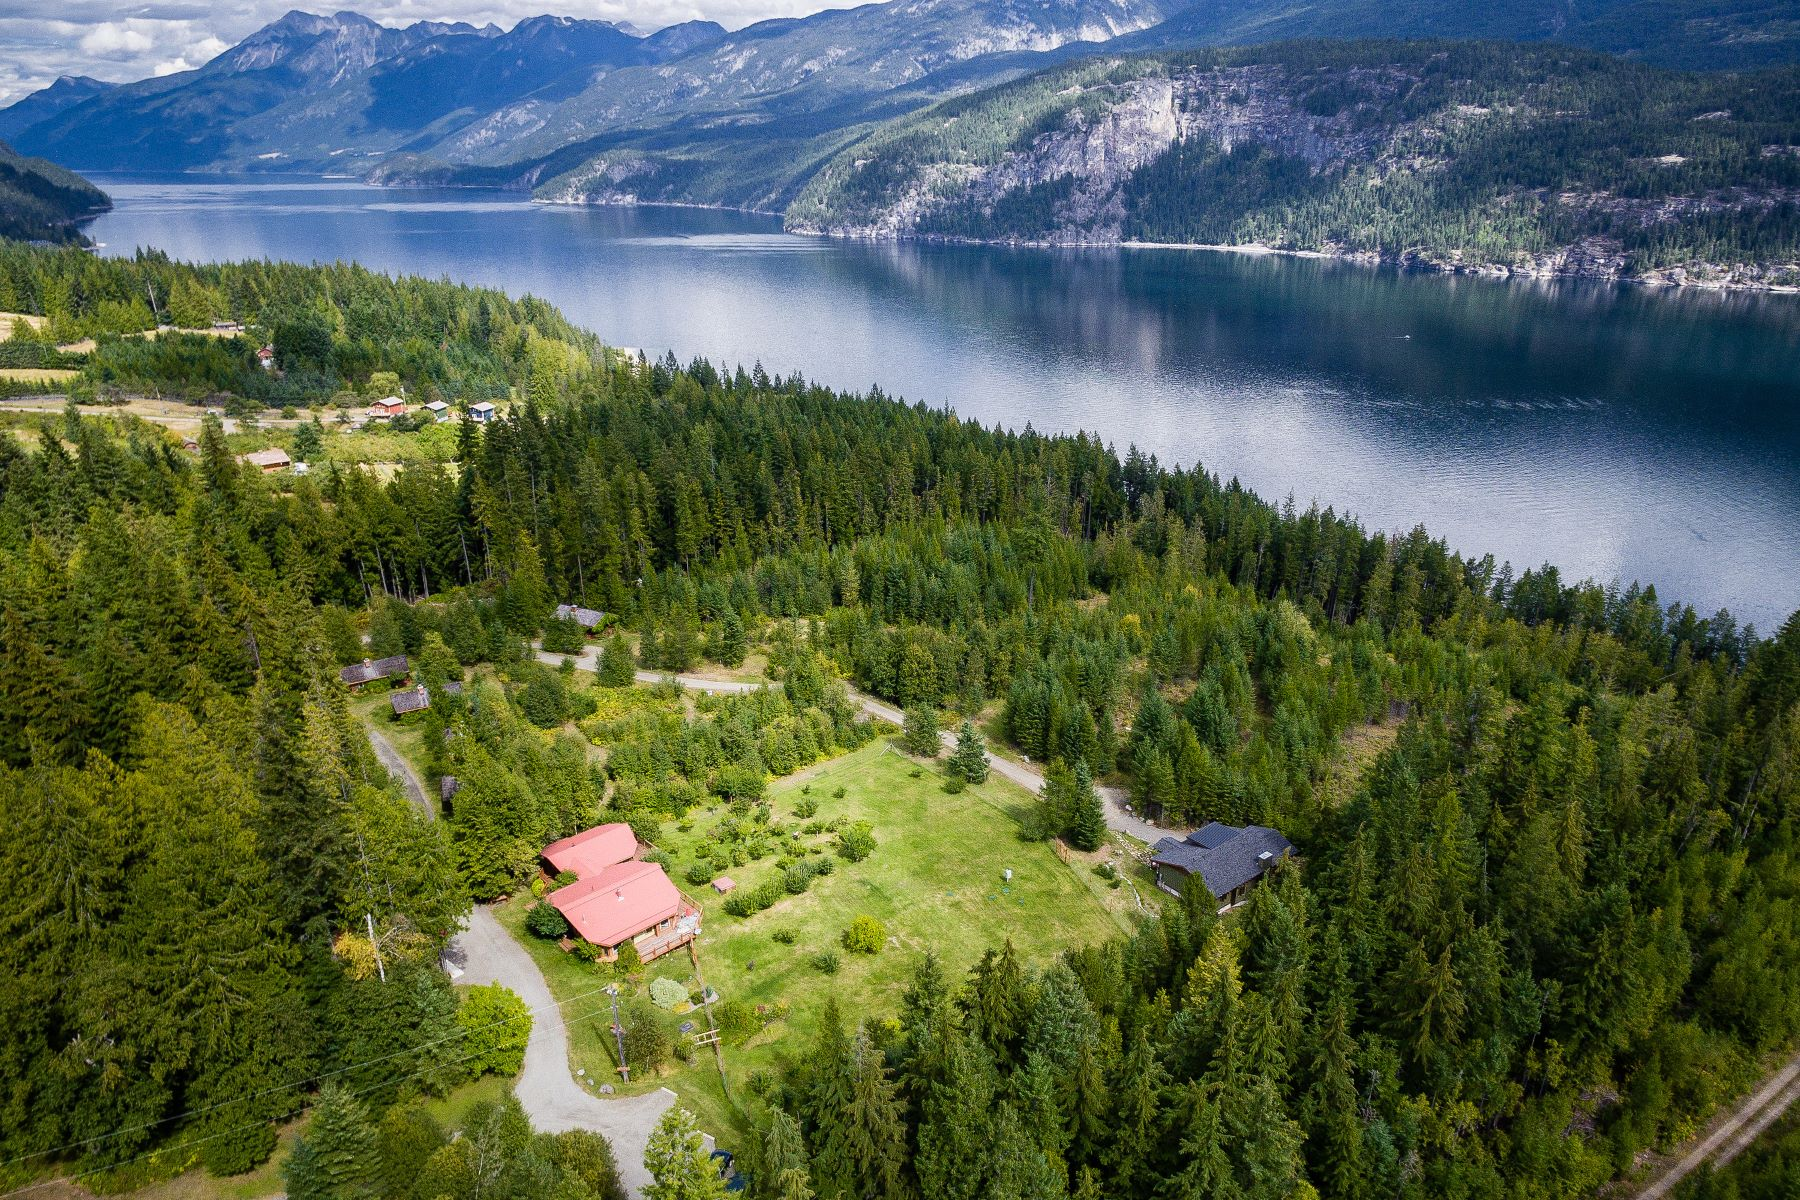 Single Family Home for Sale at Resort Living 7 - 9114 Highway 31 Kaslo, British Columbia V0G 1M0 Canada